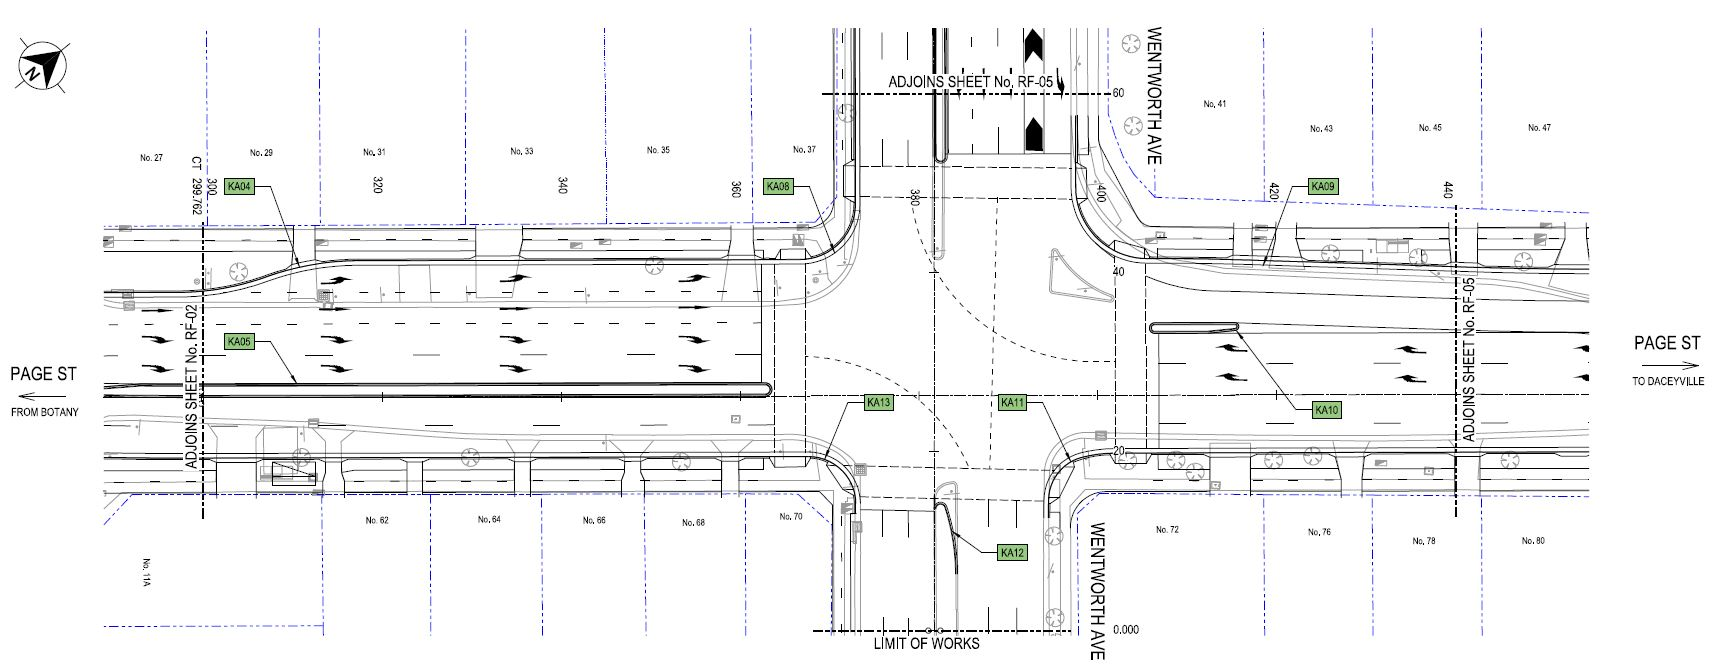 Plan of works at intersection of wentworth avenue and page street